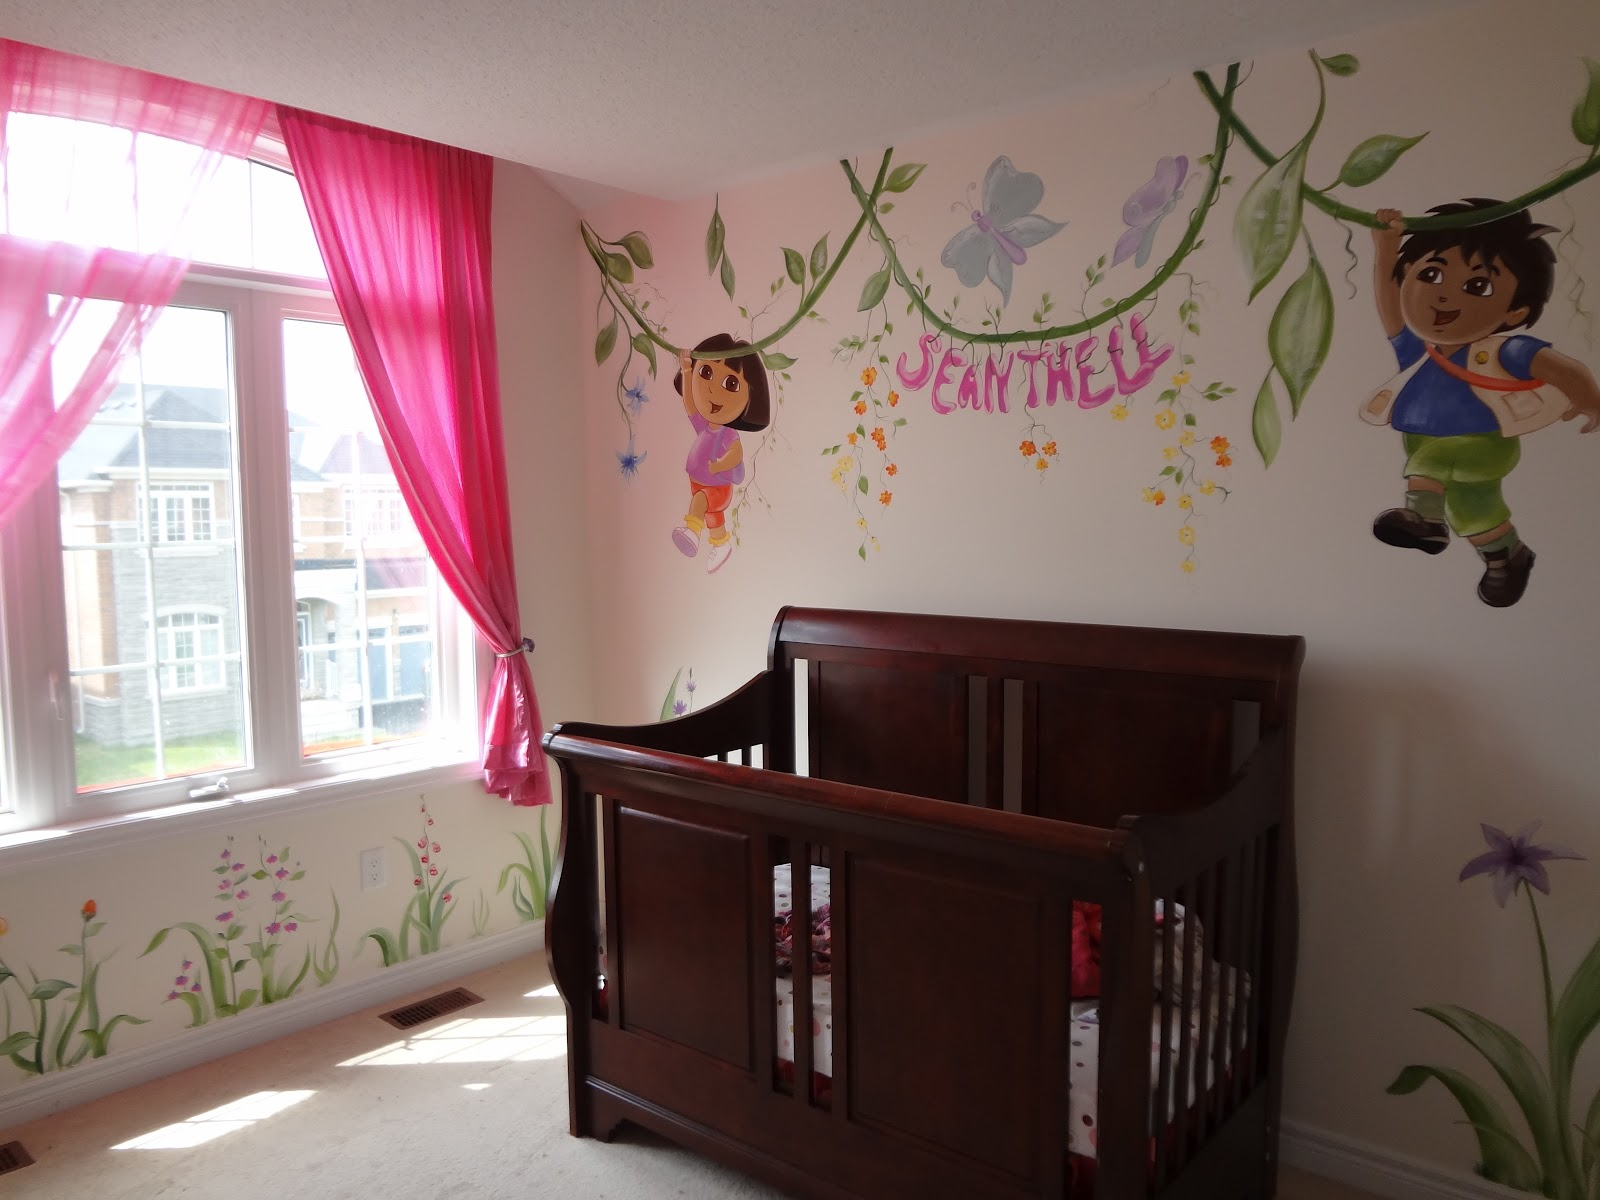 Magic on the wall murals for children dora and diego for Dora wall mural